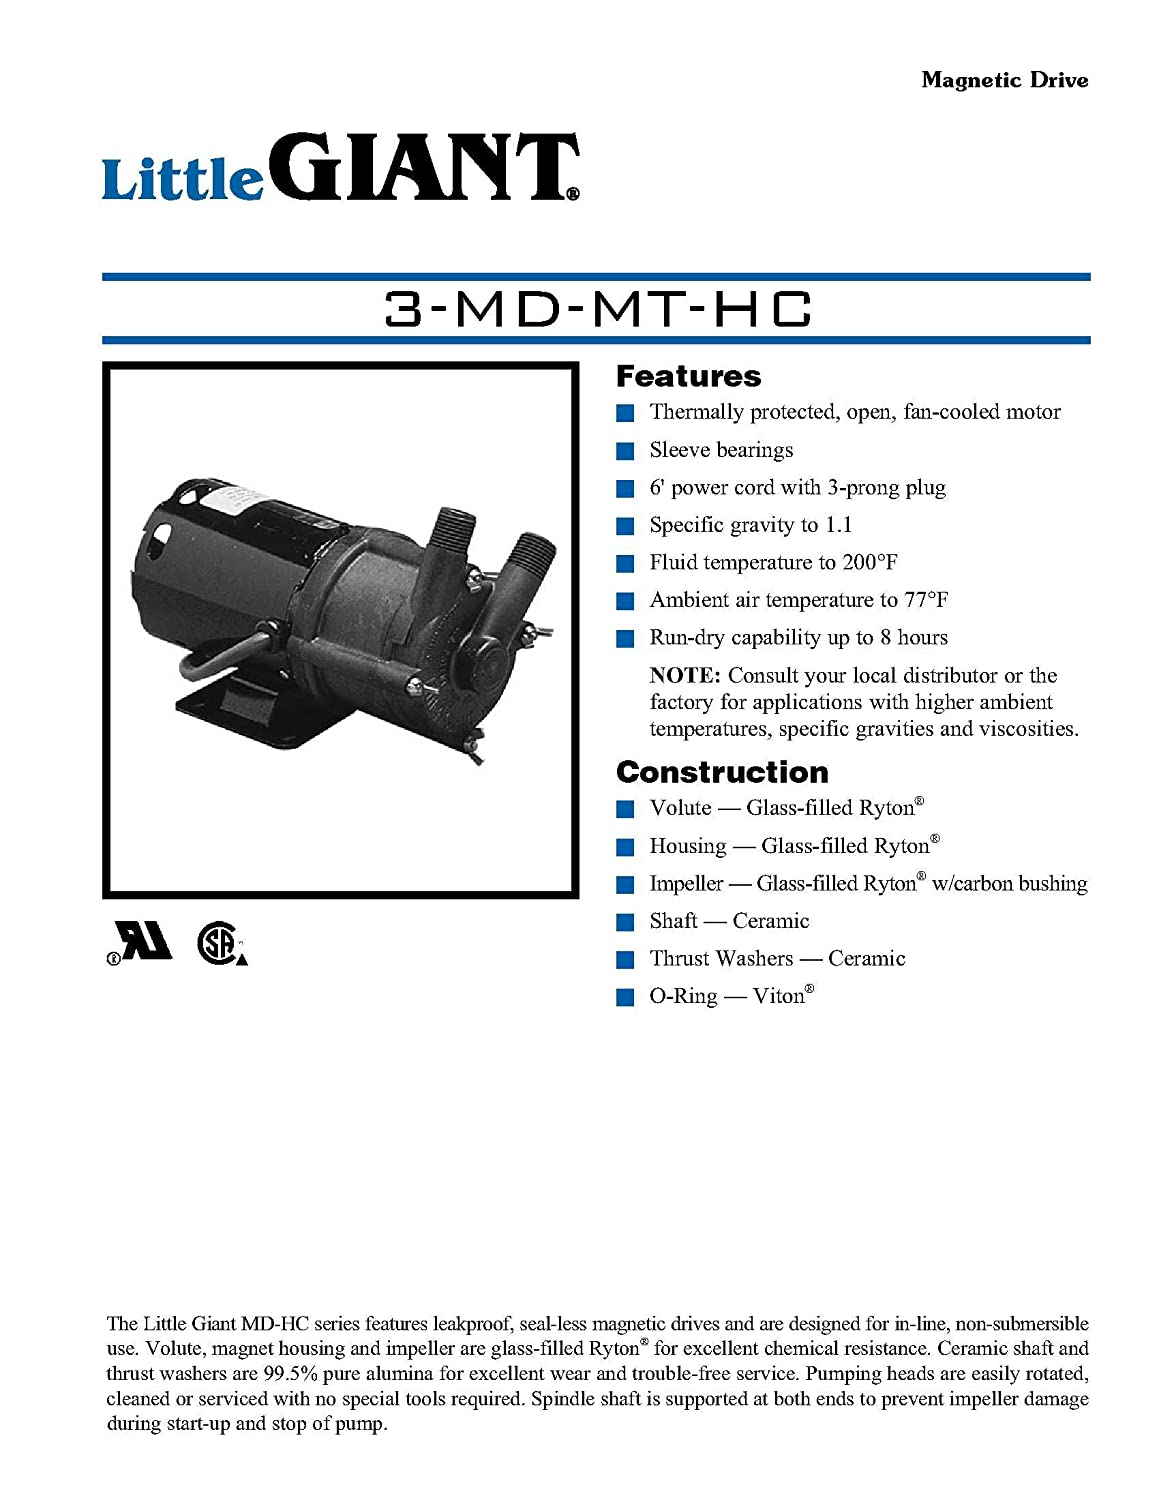 little giant 3 md mt hc 1 25 hp 500 gph 1 magnetic drive little giant 3 md mt hc 1 25 hp 500 gph 1 magnetic drive pump 6 power cord 578603 power water pumps amazon com